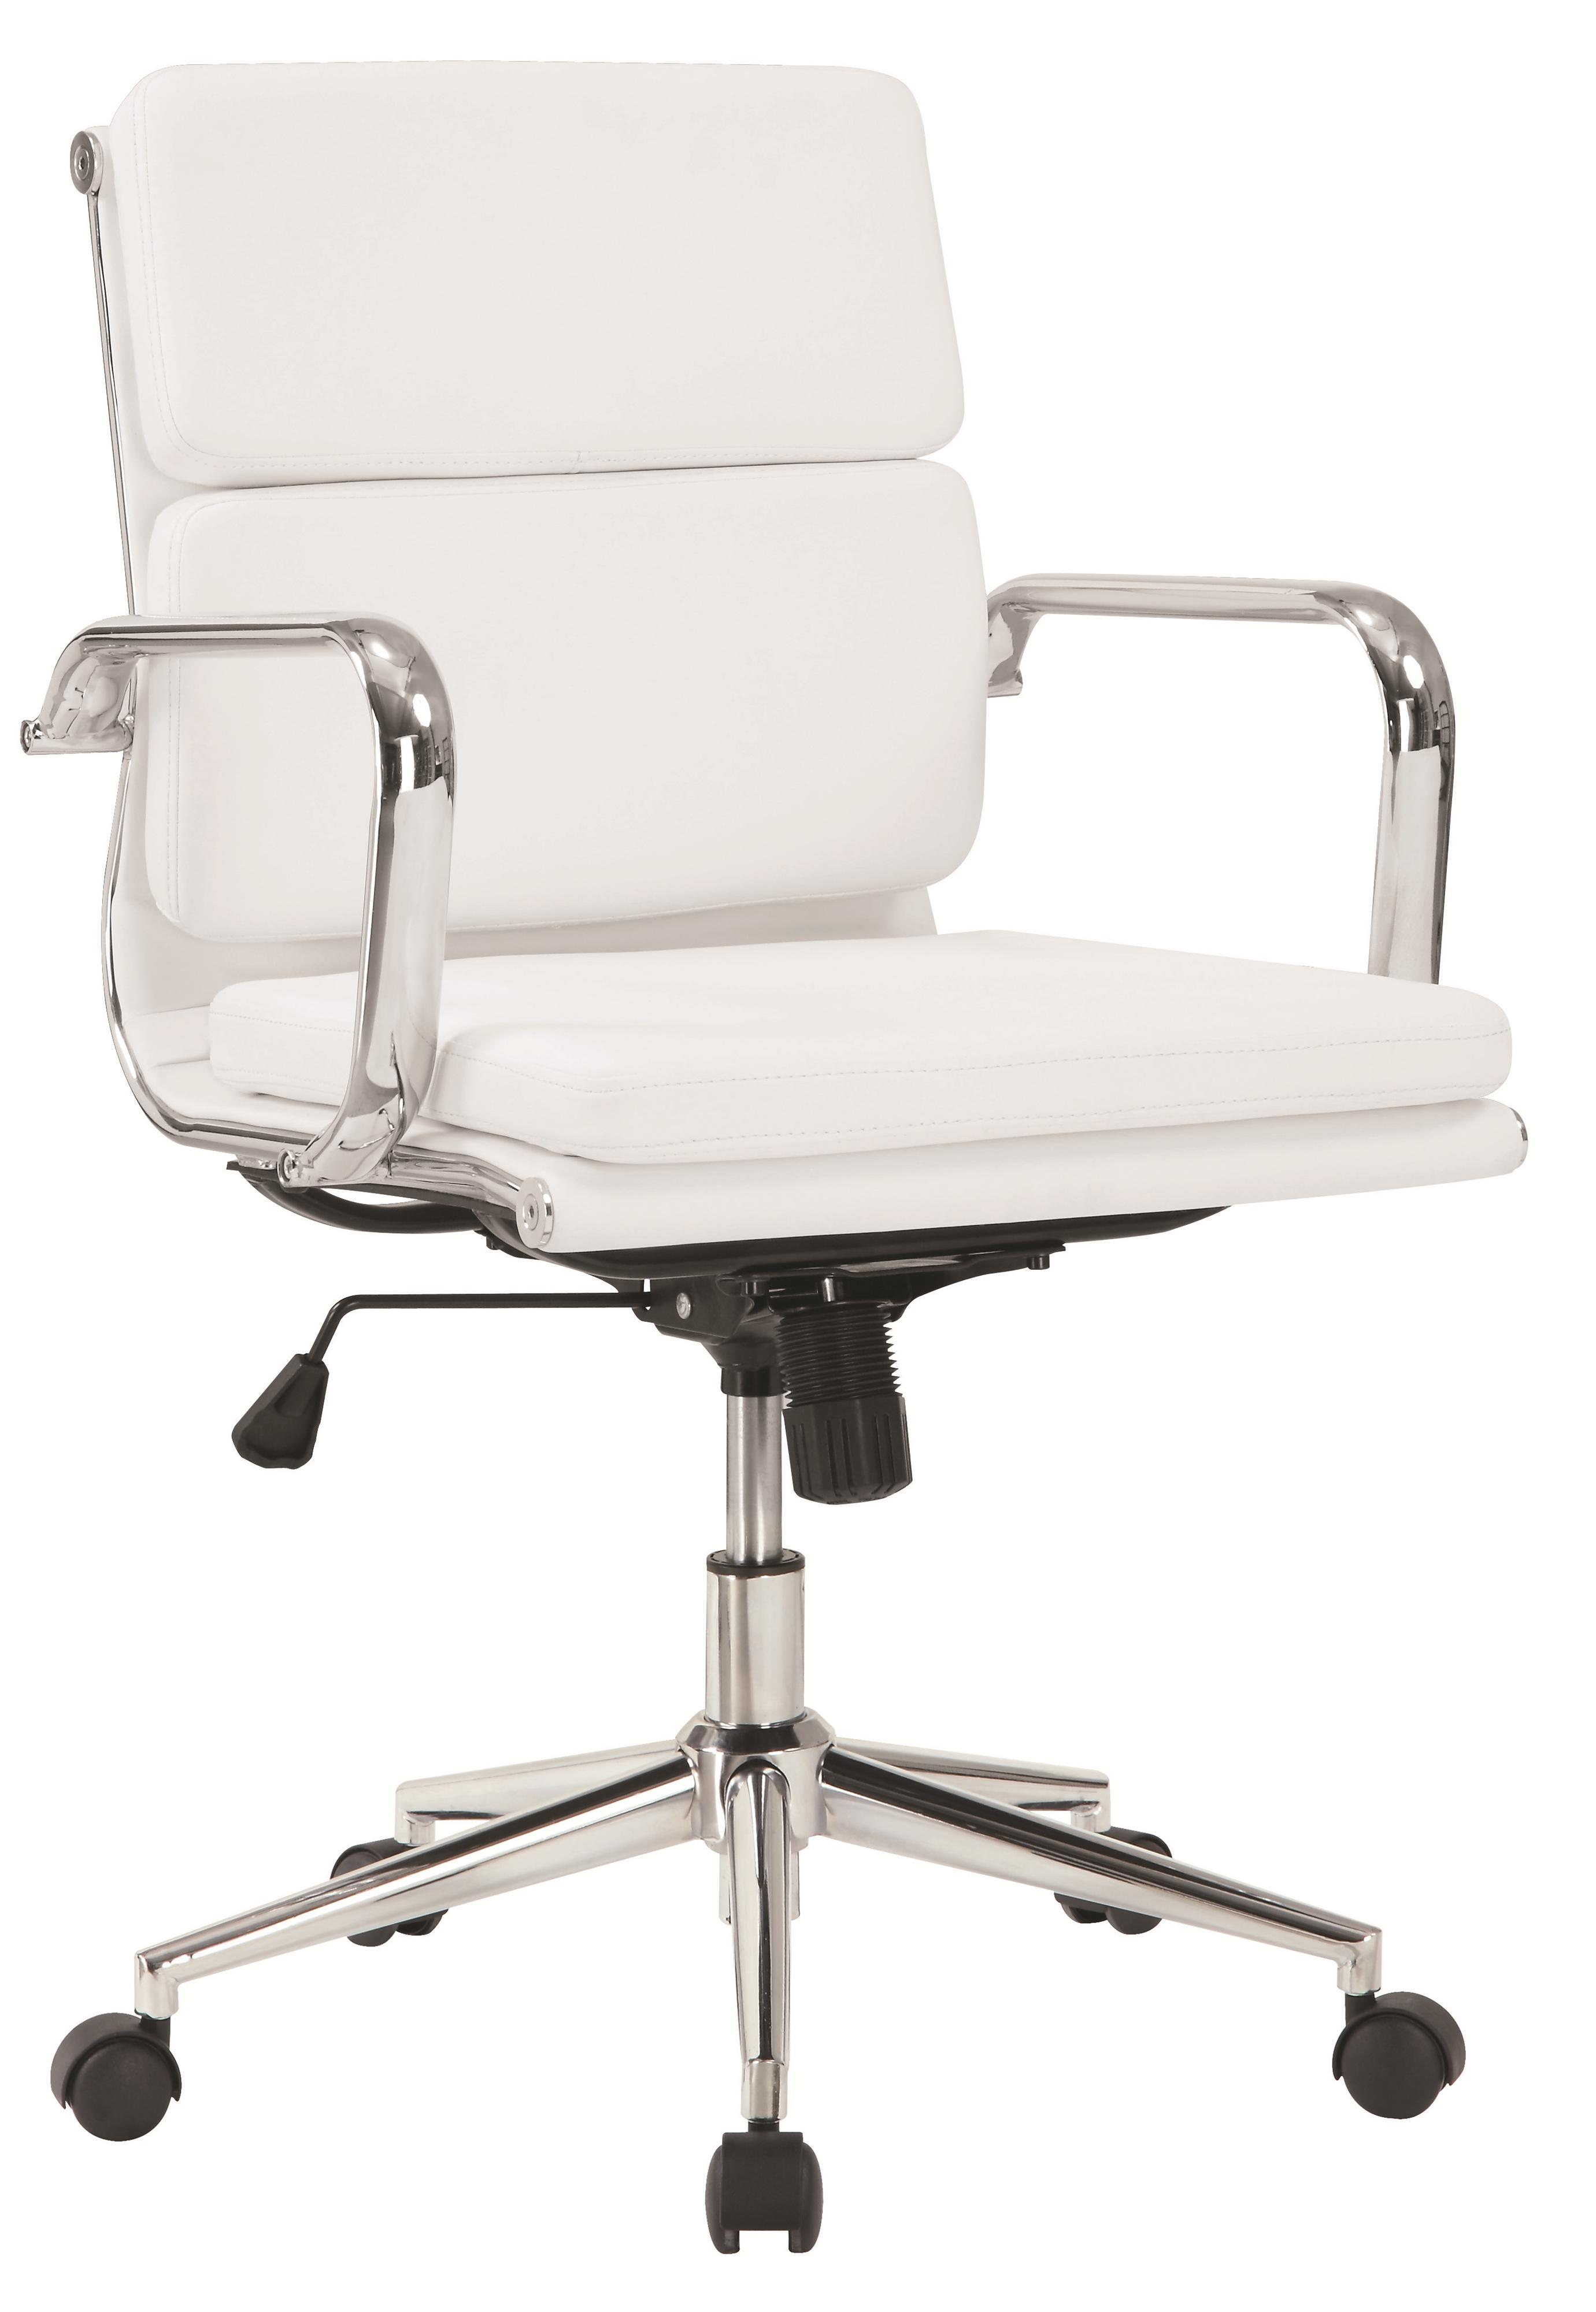 products_coaster_color_office chairs_800839-b0